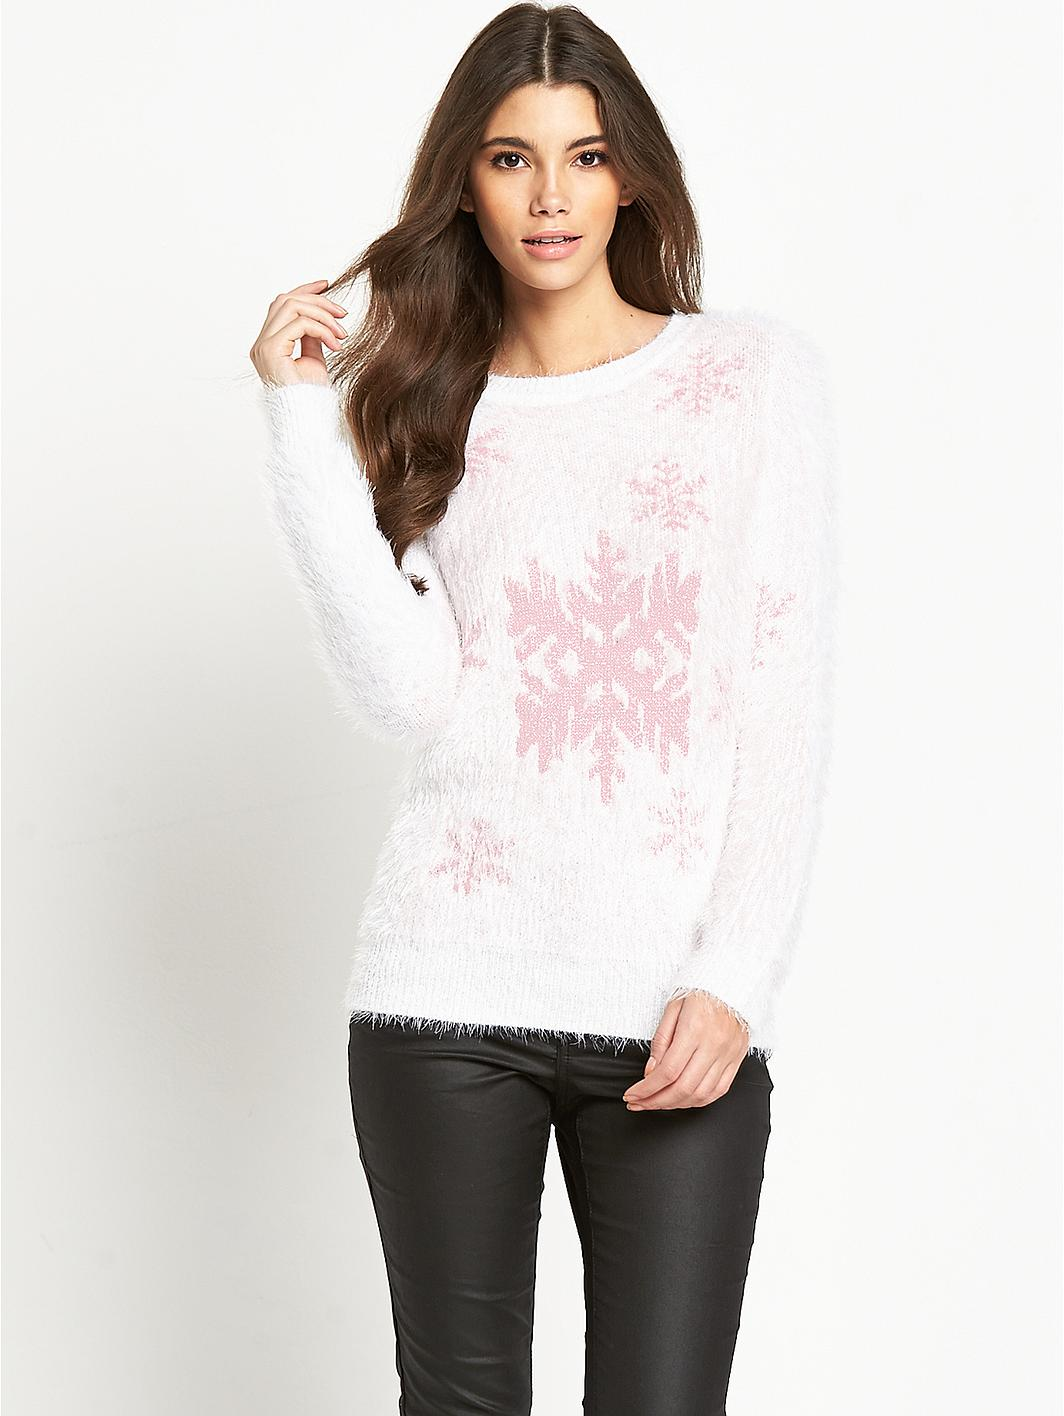 Free shipping christmas jumpers online store. Best christmas jumpers for sale. Cheap christmas jumpers with excellent quality and fast delivery. | obmenvisitami.tk Elk Snowflake Jacquard Mini Knit Sweater Dress. Elk Snowflake Jacquard Mini Knit Sweater Dress (41% OFF) Style: Casual Material: Polyester.